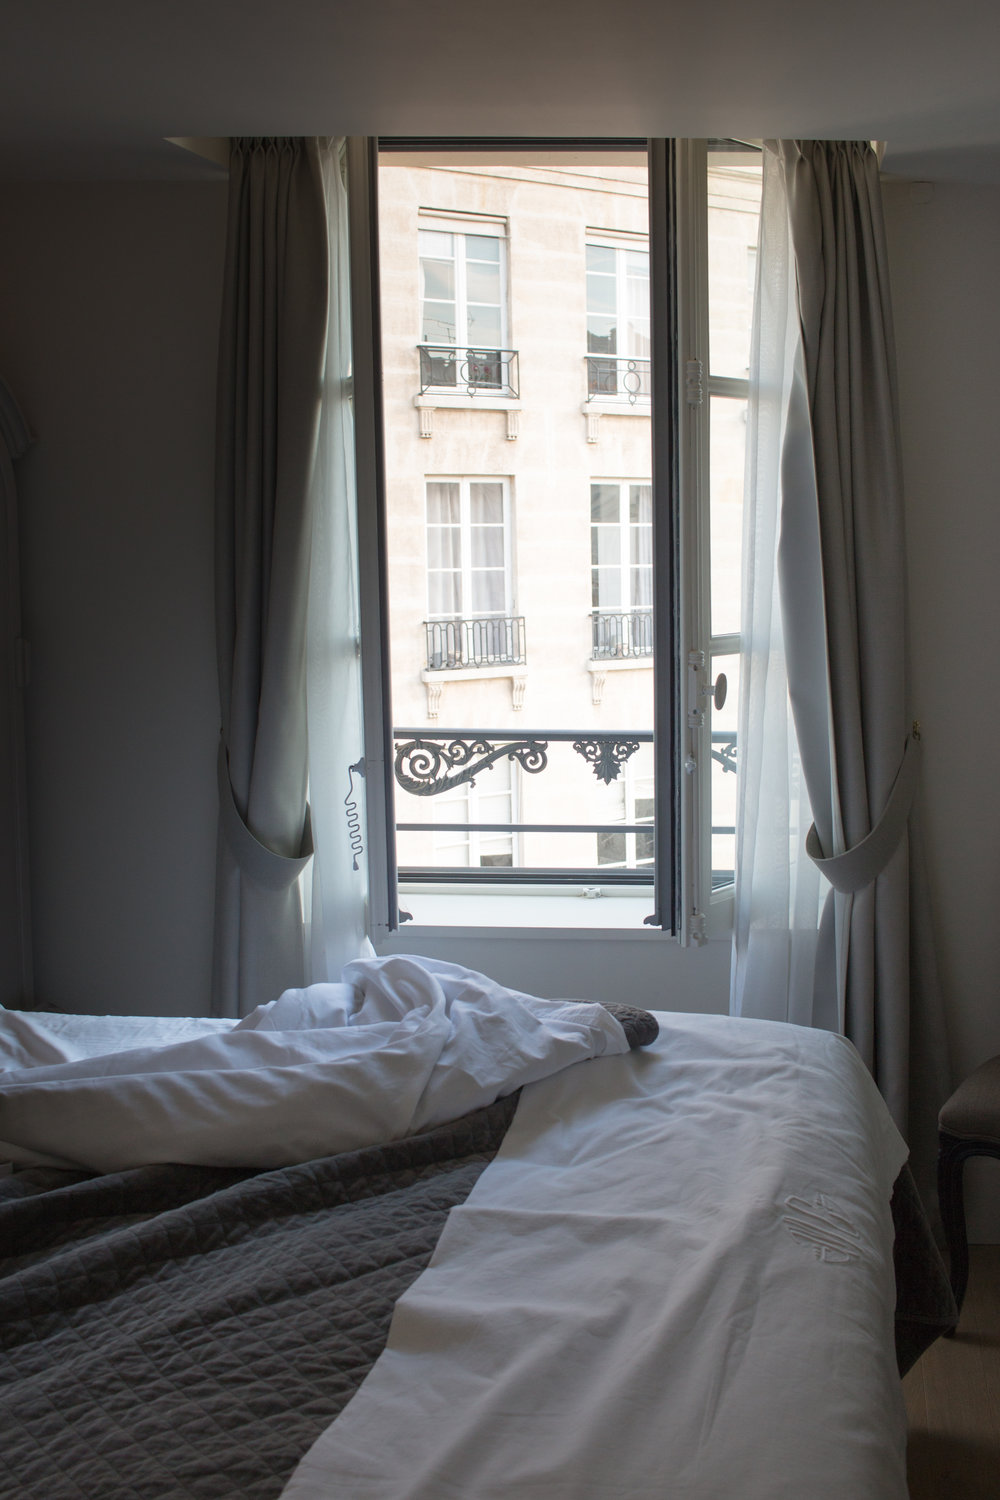 sunrise in place dauphine waking up in paris, france by rebecca plotnick